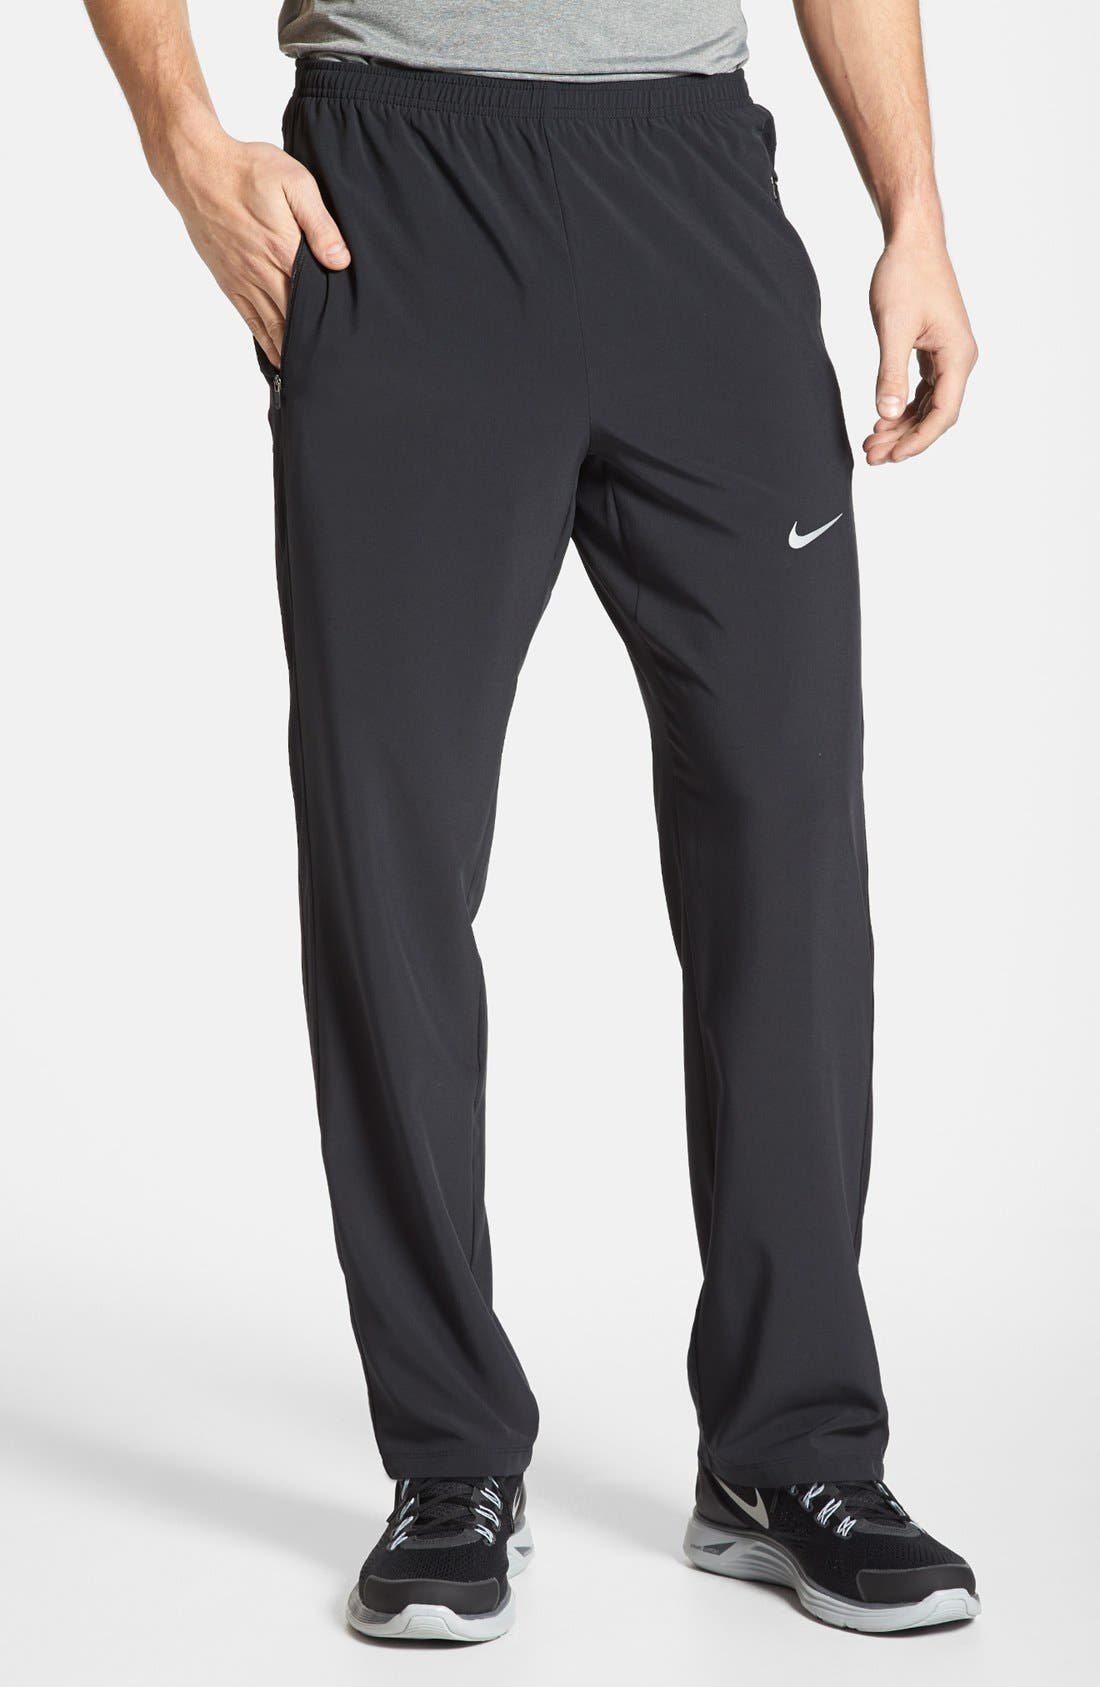 Alternate Image 1 Selected - Nike 'Dri-FIT SW' Stretch Woven Pants